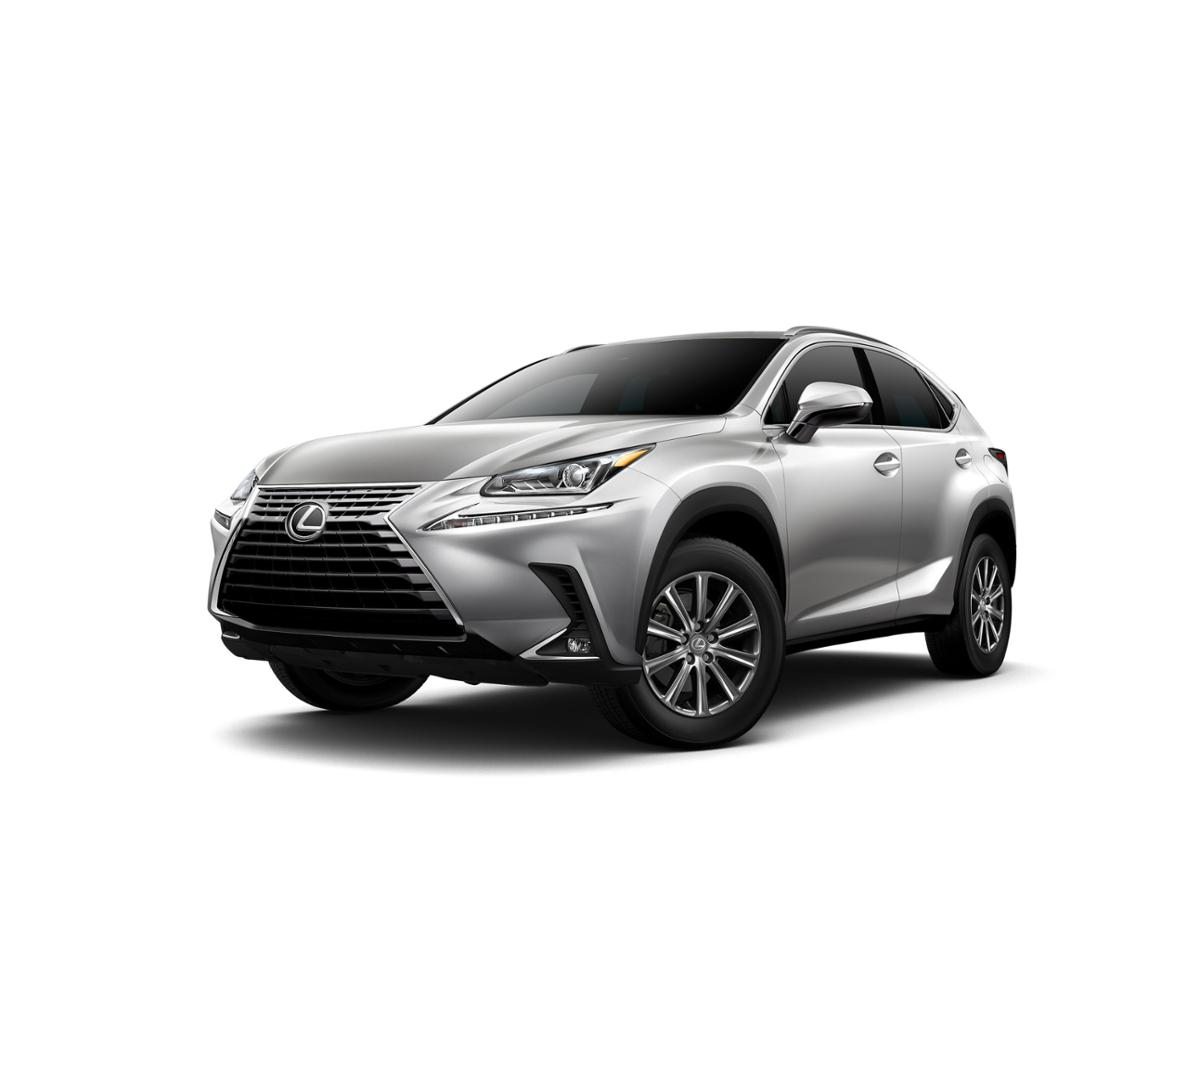 2019 Lexus NX 300 Vehicle Photo in Mission Viejo, CA 92692